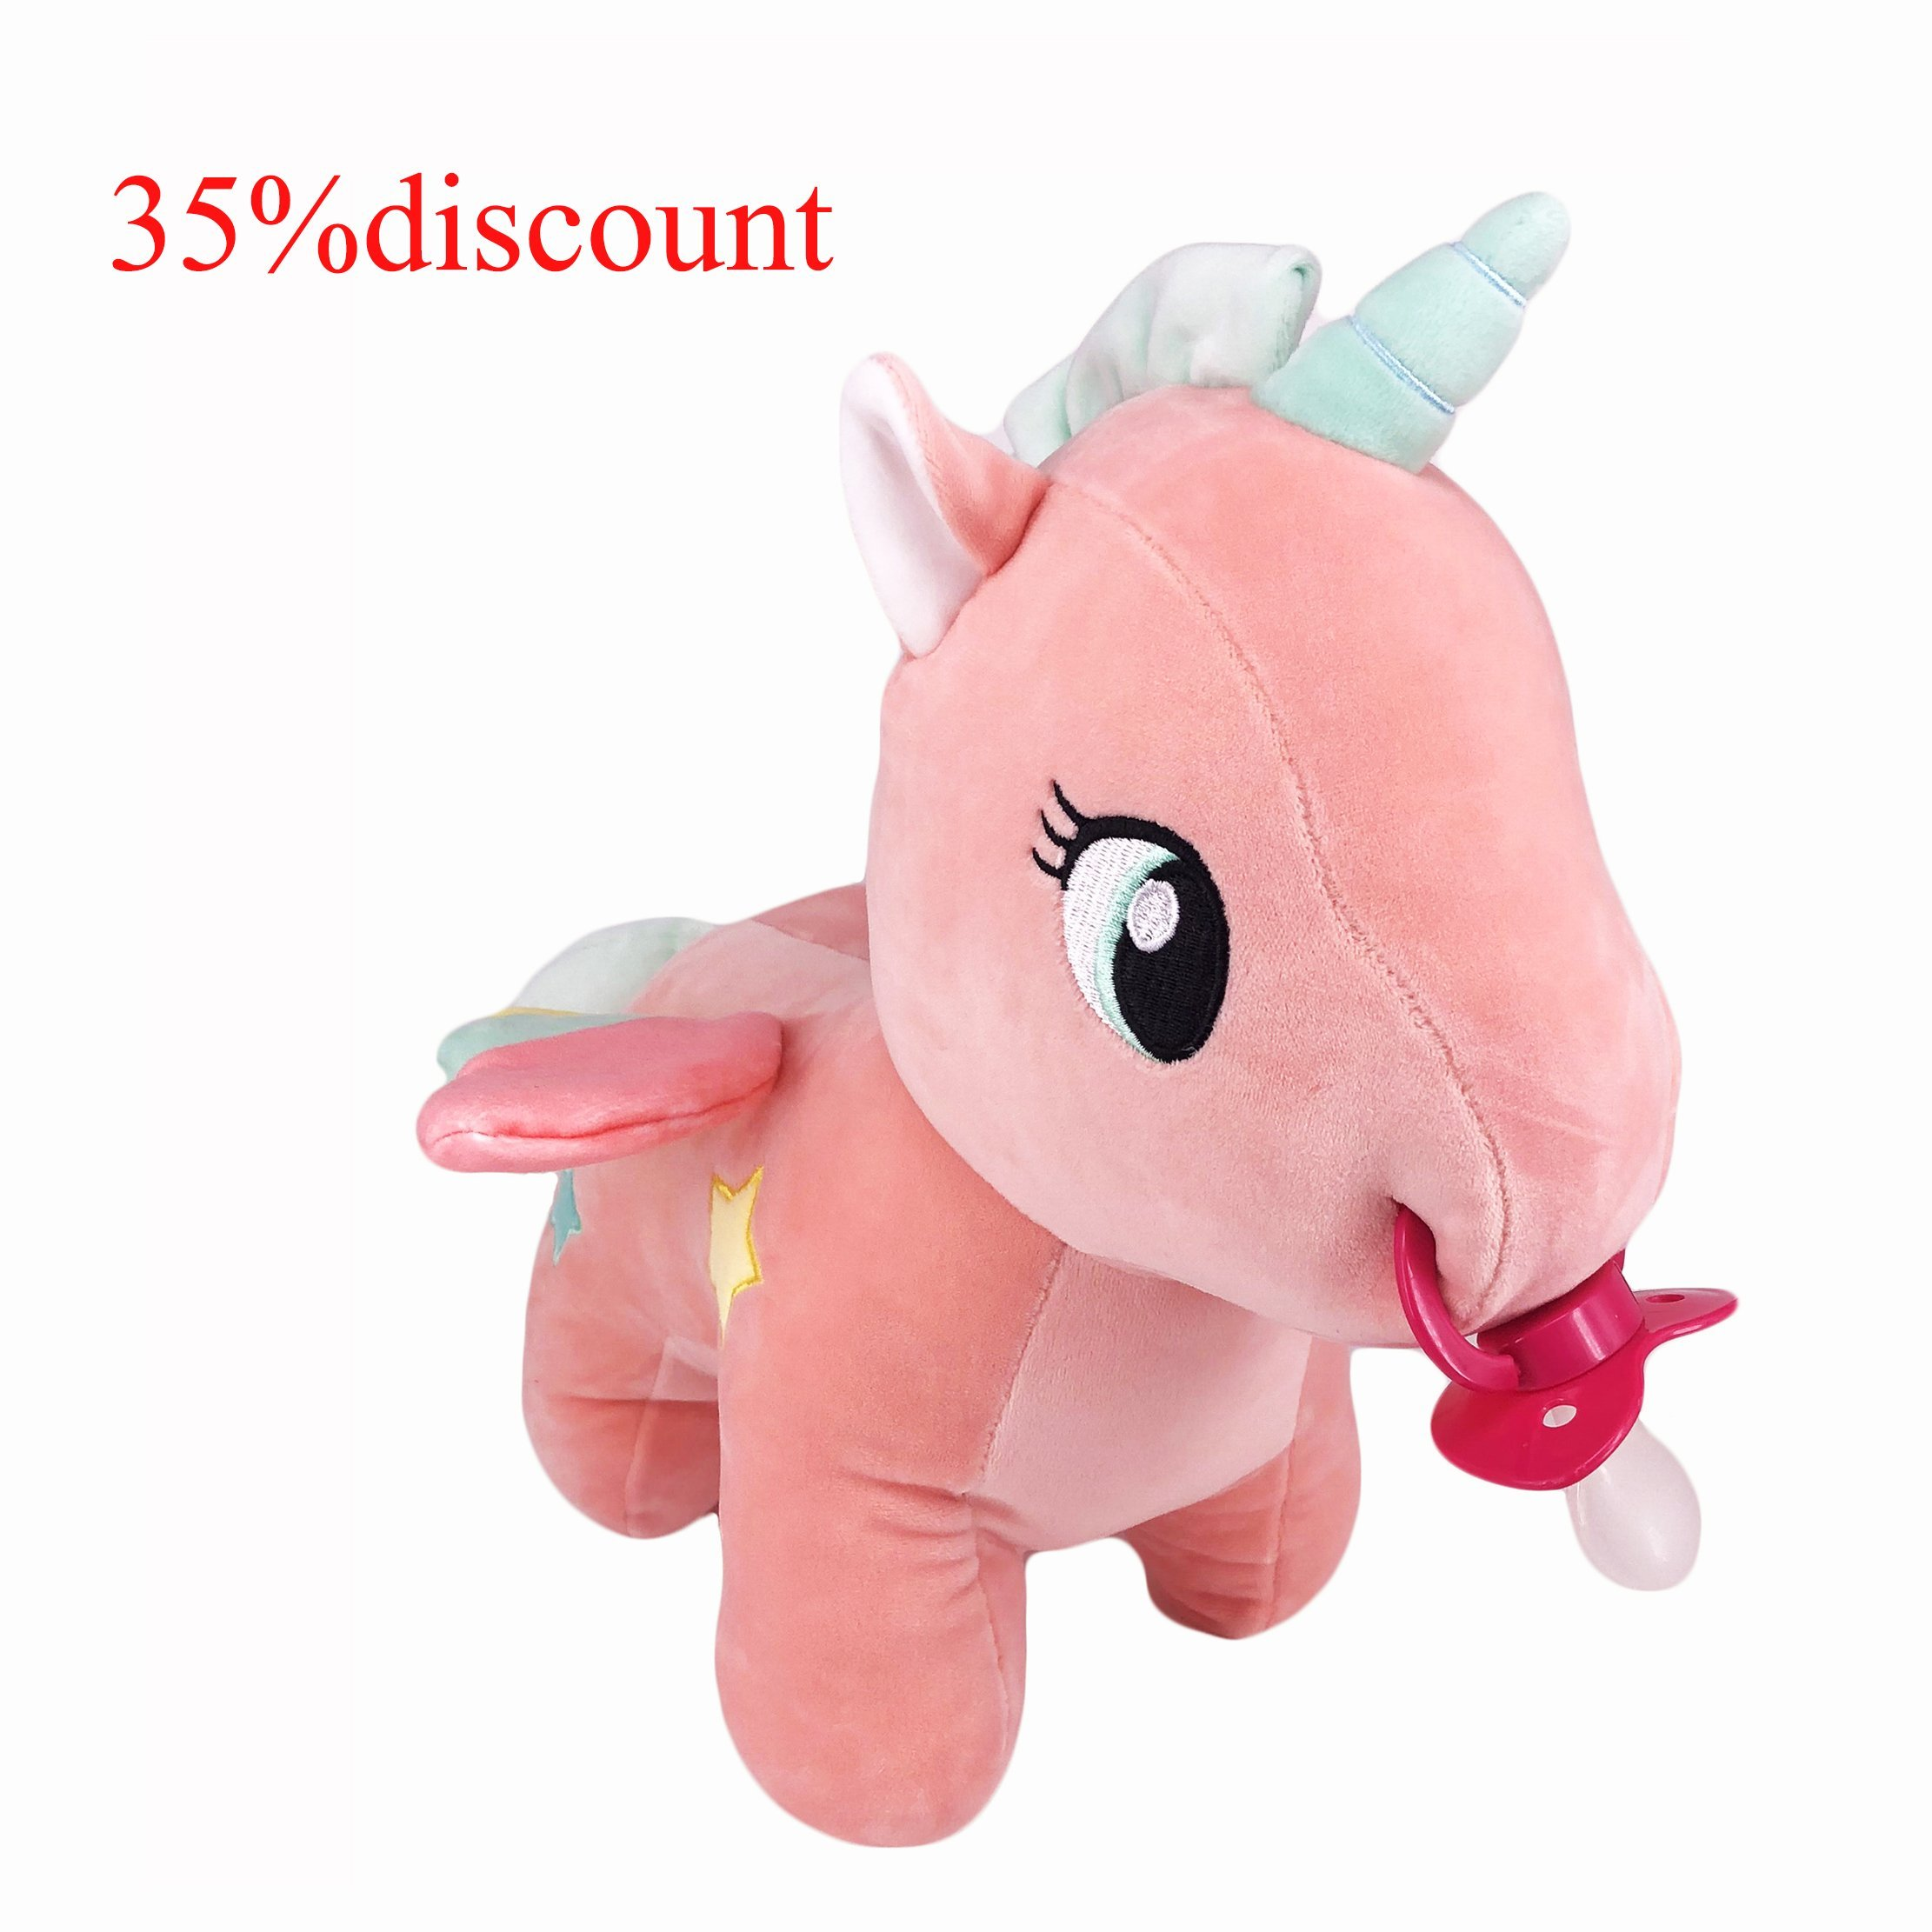 TEN@NIGHT Adult Baby Unicorn Pacifier ABDL Adult Sized Pacifier with Unicorn Doll Holder by TEN@NIGHT